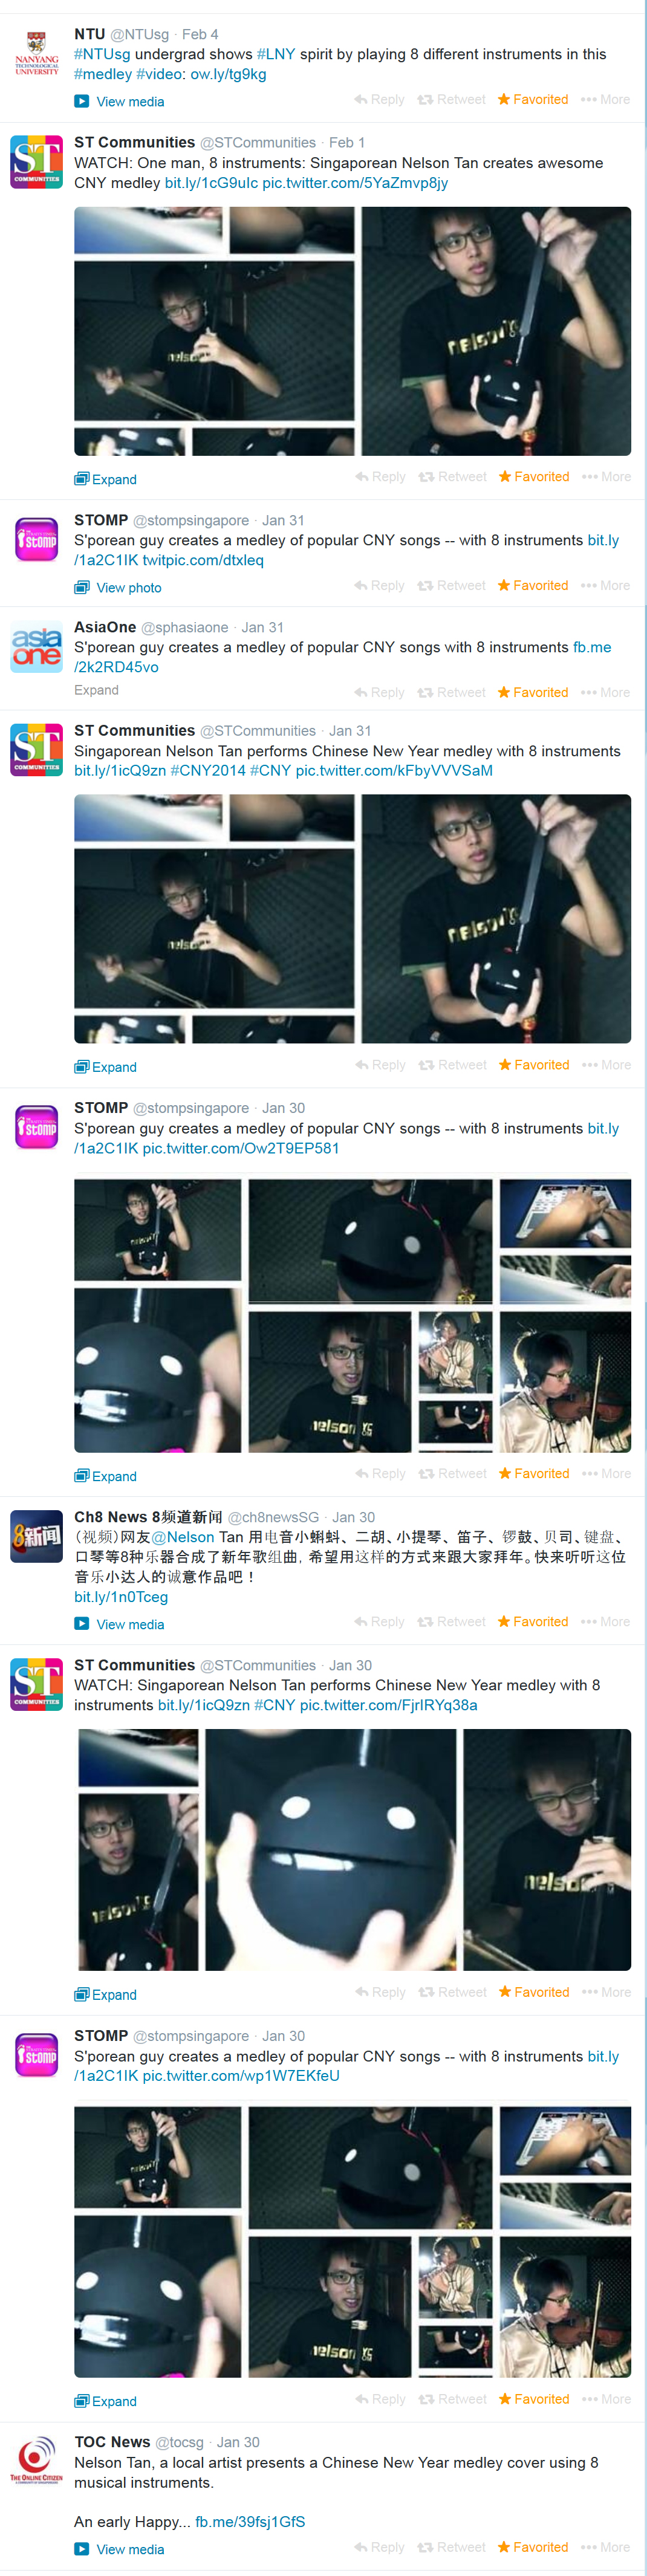 twitter sharing of nelsontyc cny music cover